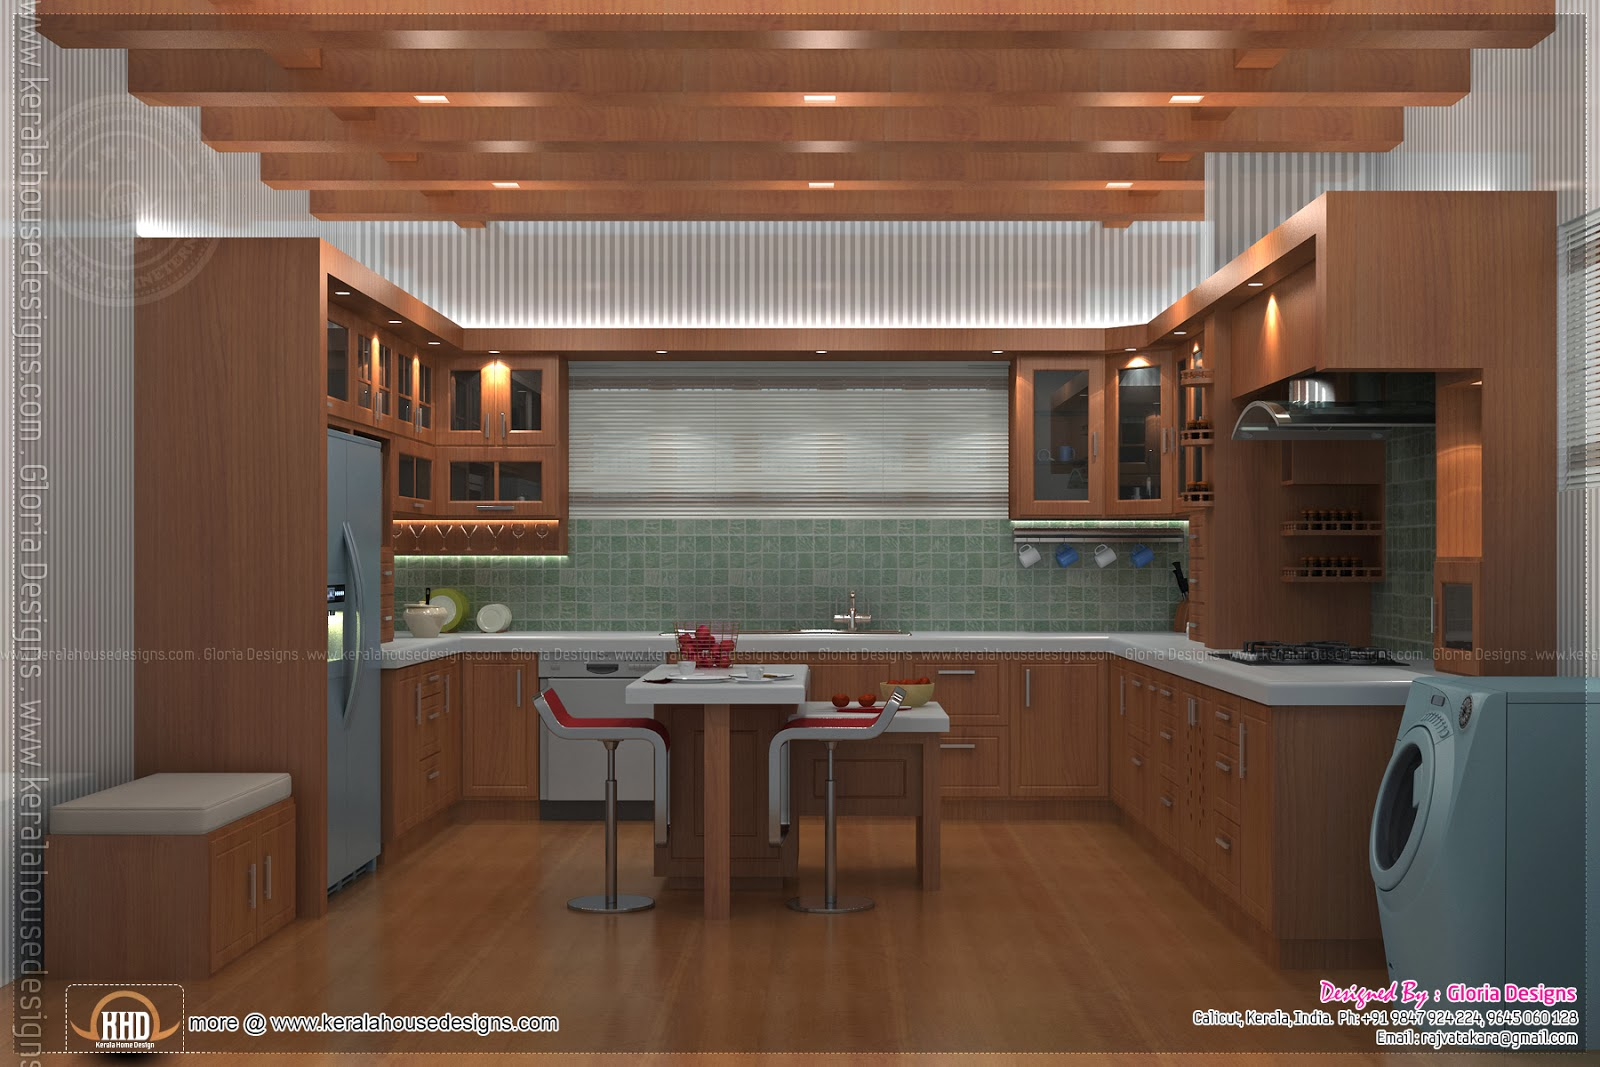 Home interior designs by gloria designs calicut home for Kitchen design kerala